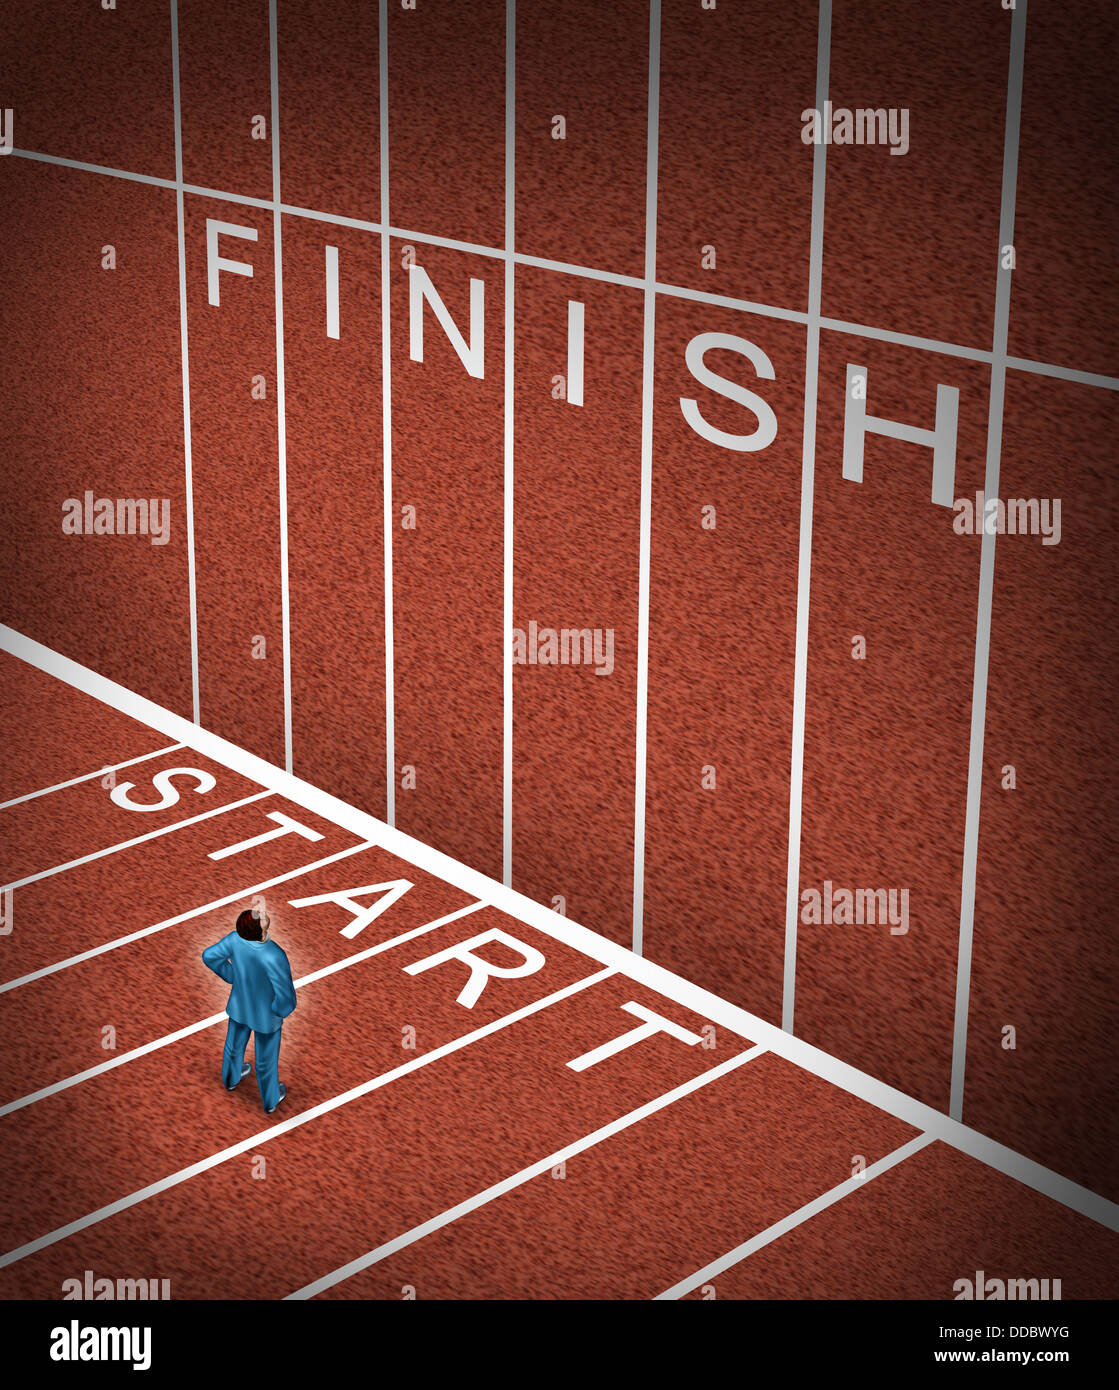 Upward climb business idea to overcome adversity with a businessman standing at the start line of a track and field - Stock Image